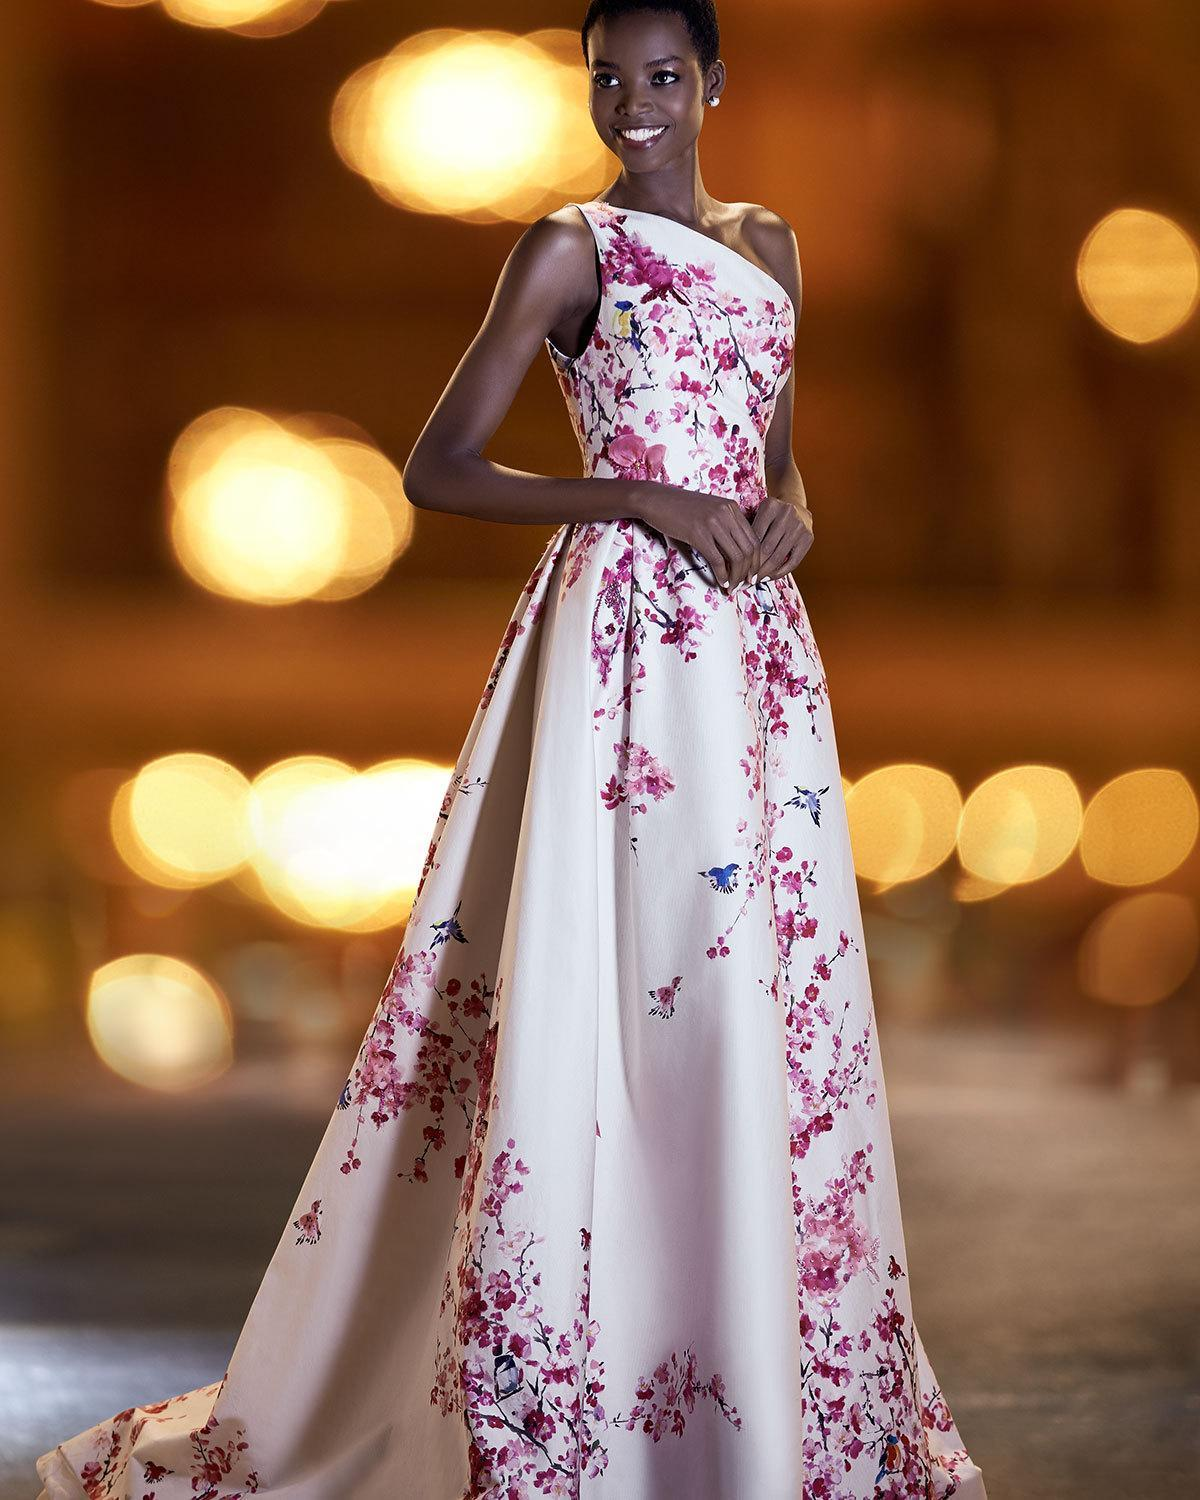 Lyst - Monique Lhuillier Cherry Blossom One-shoulder Ball Gown in Pink